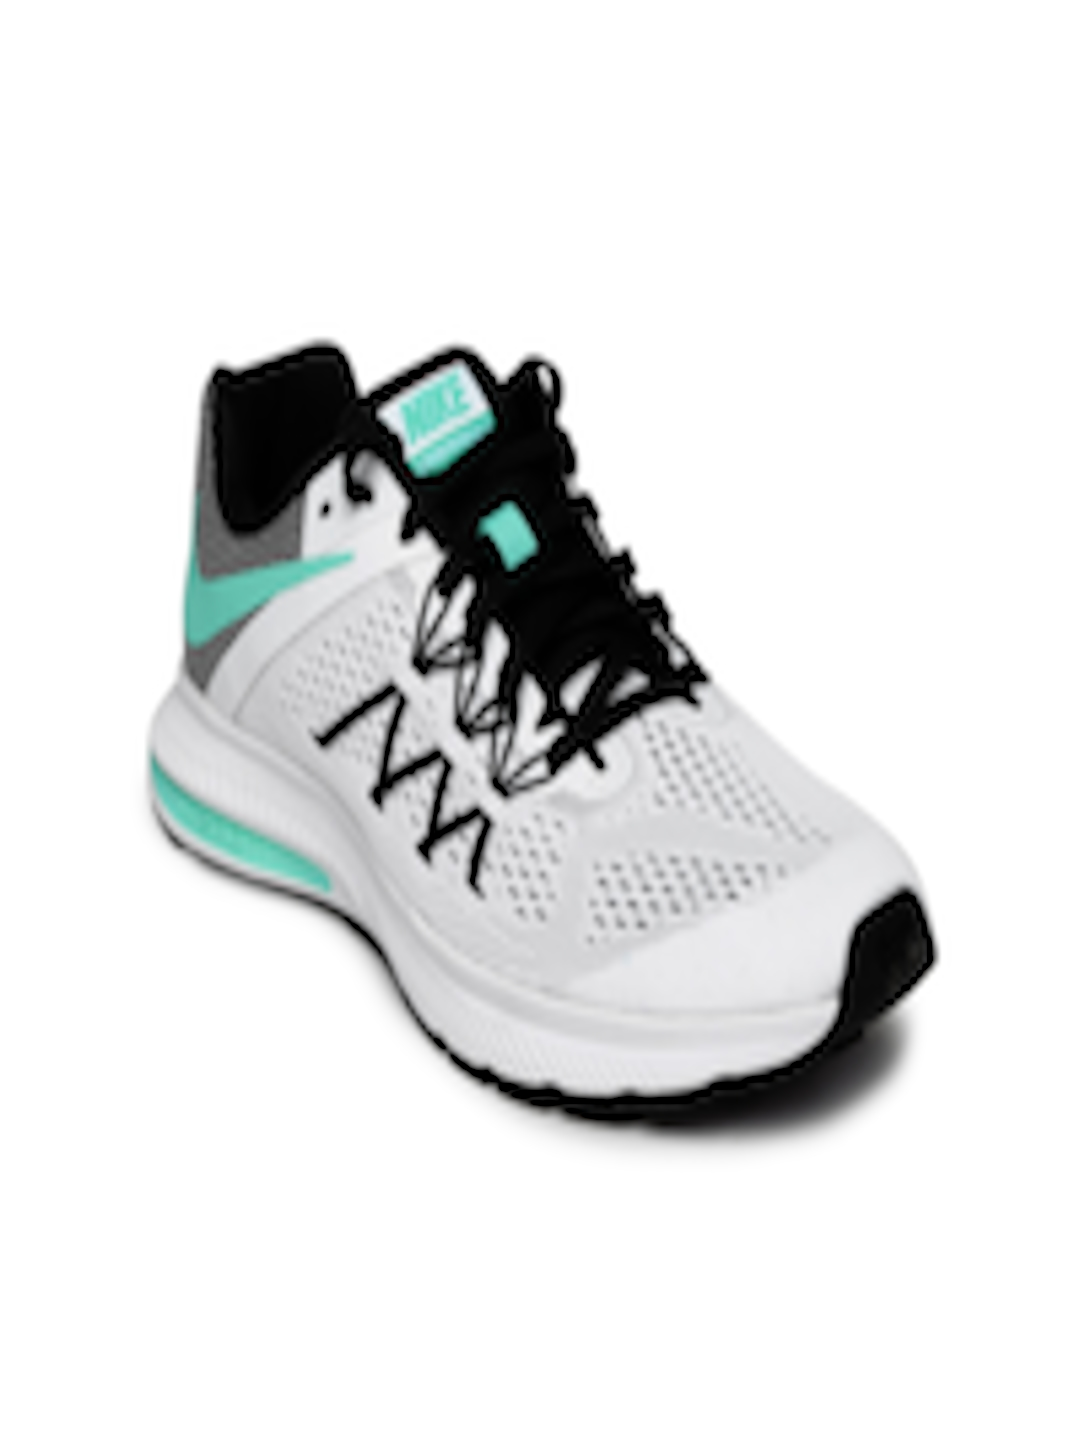 newest 74598 20d36 Buy Nike Women White & Black Zoom Winflo 3 Running Shoes - - Footwear for  Women